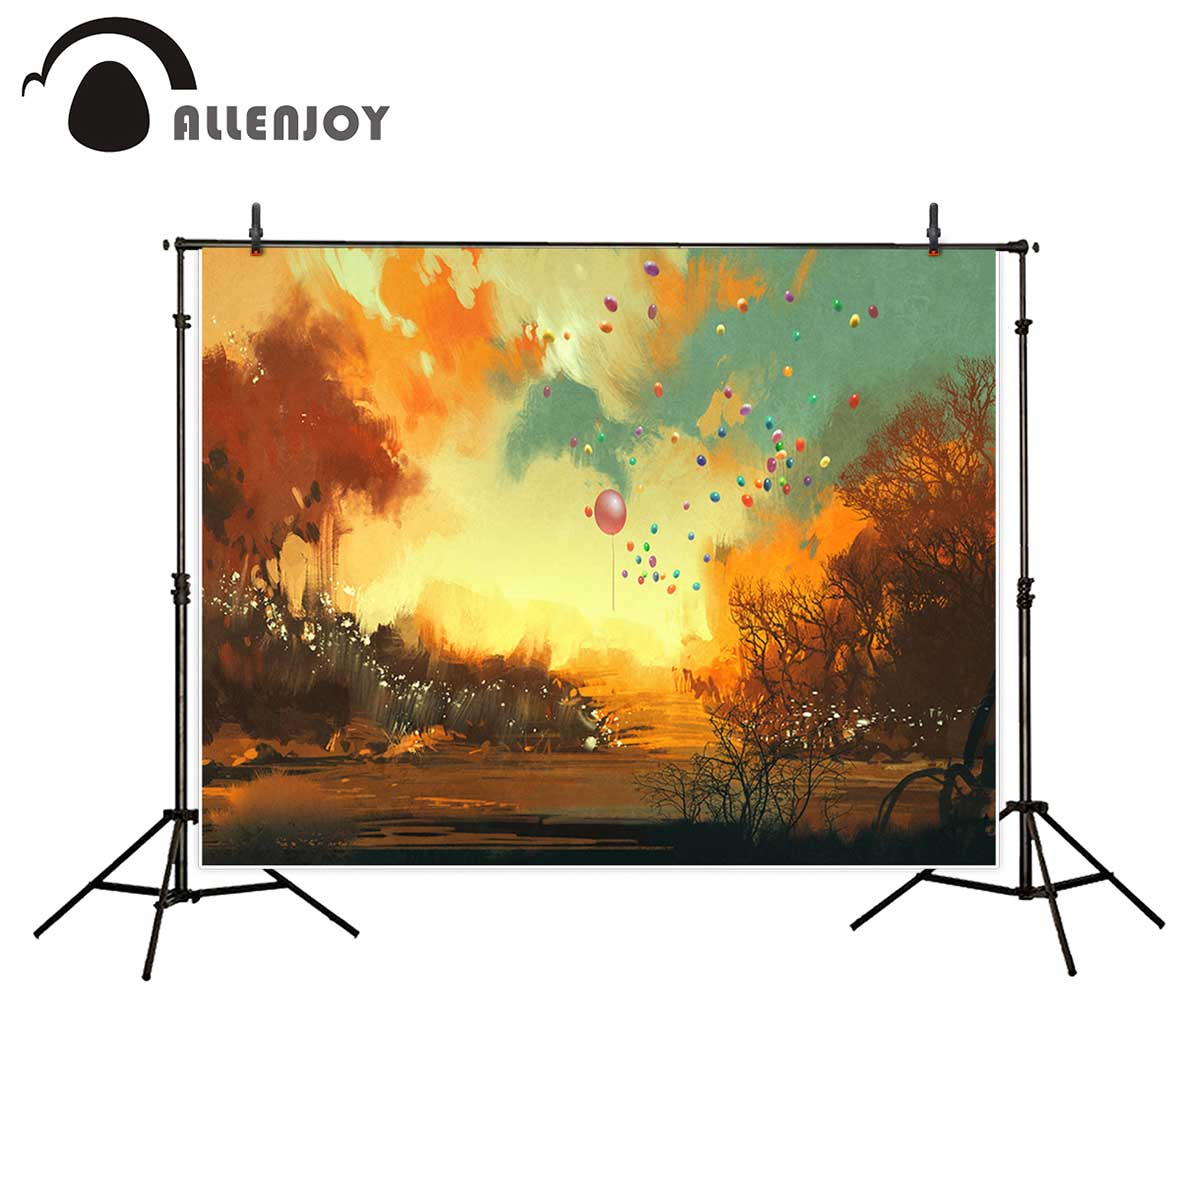 Allenjoy photography backdrops Ballons autumn painting tree backgrounds for children photo background for photography 600cm 300cm backgrounds painting flowers blooming beauty mother s day photography backdrops photo lk 1428